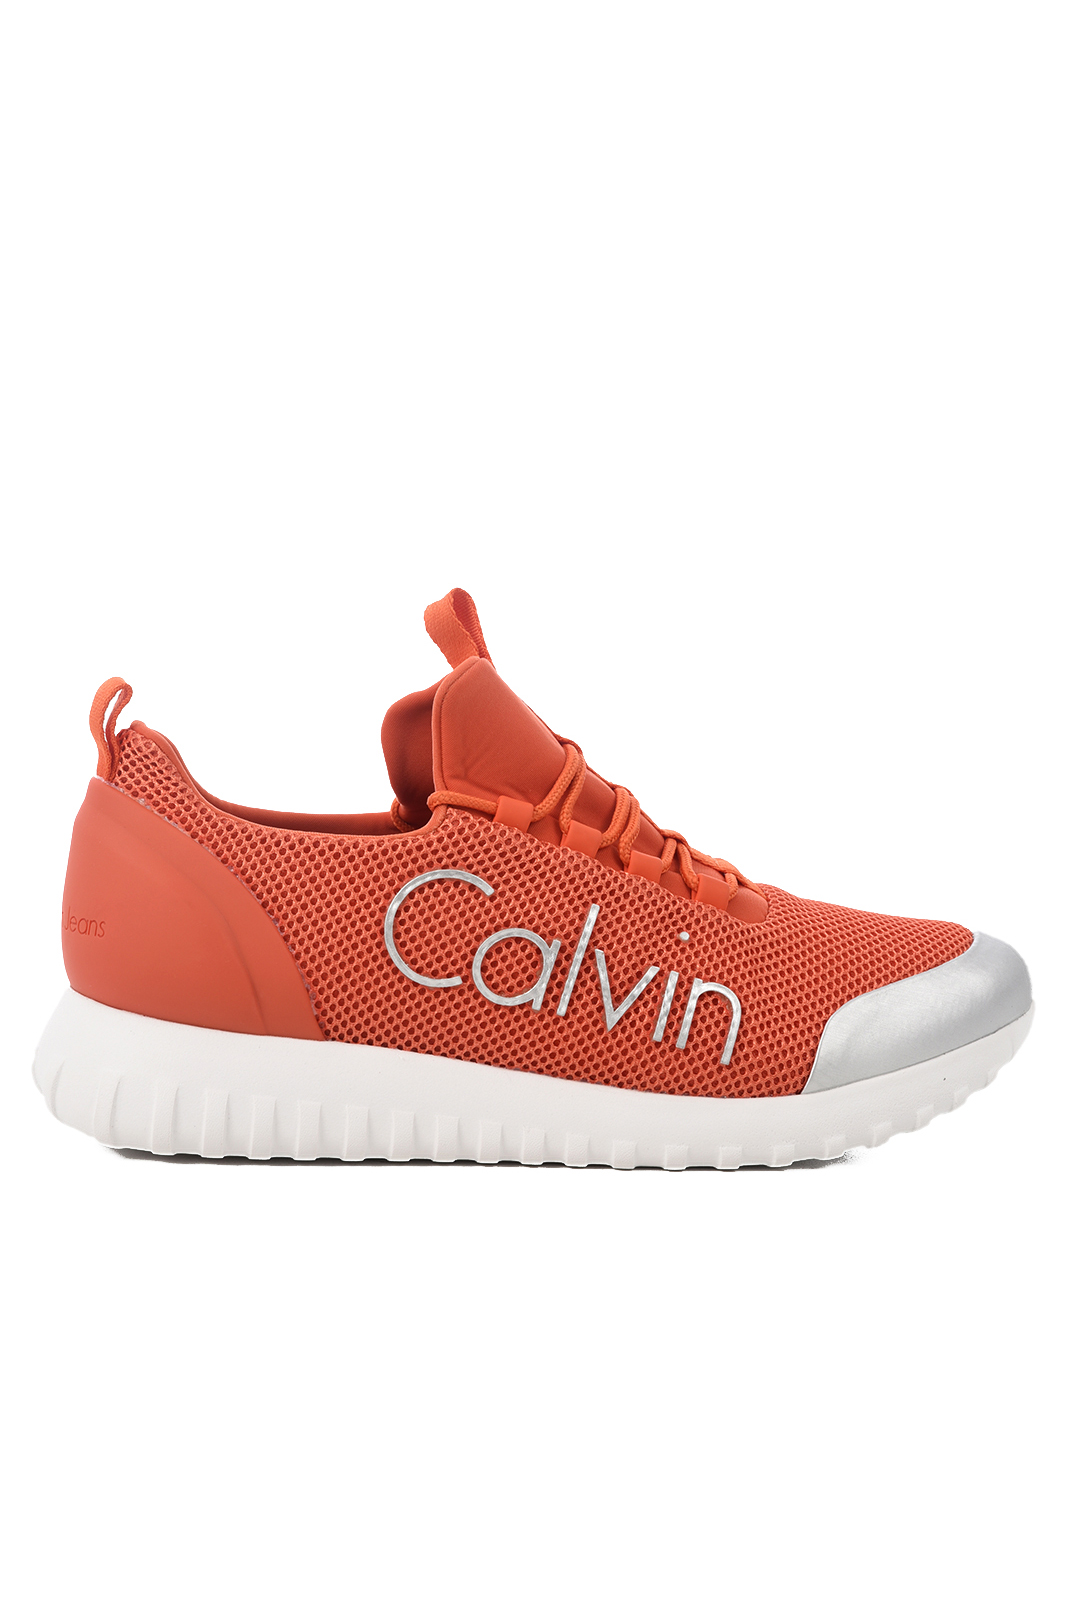 Baskets / Sport  Calvin klein RON ORANGE/SILVER